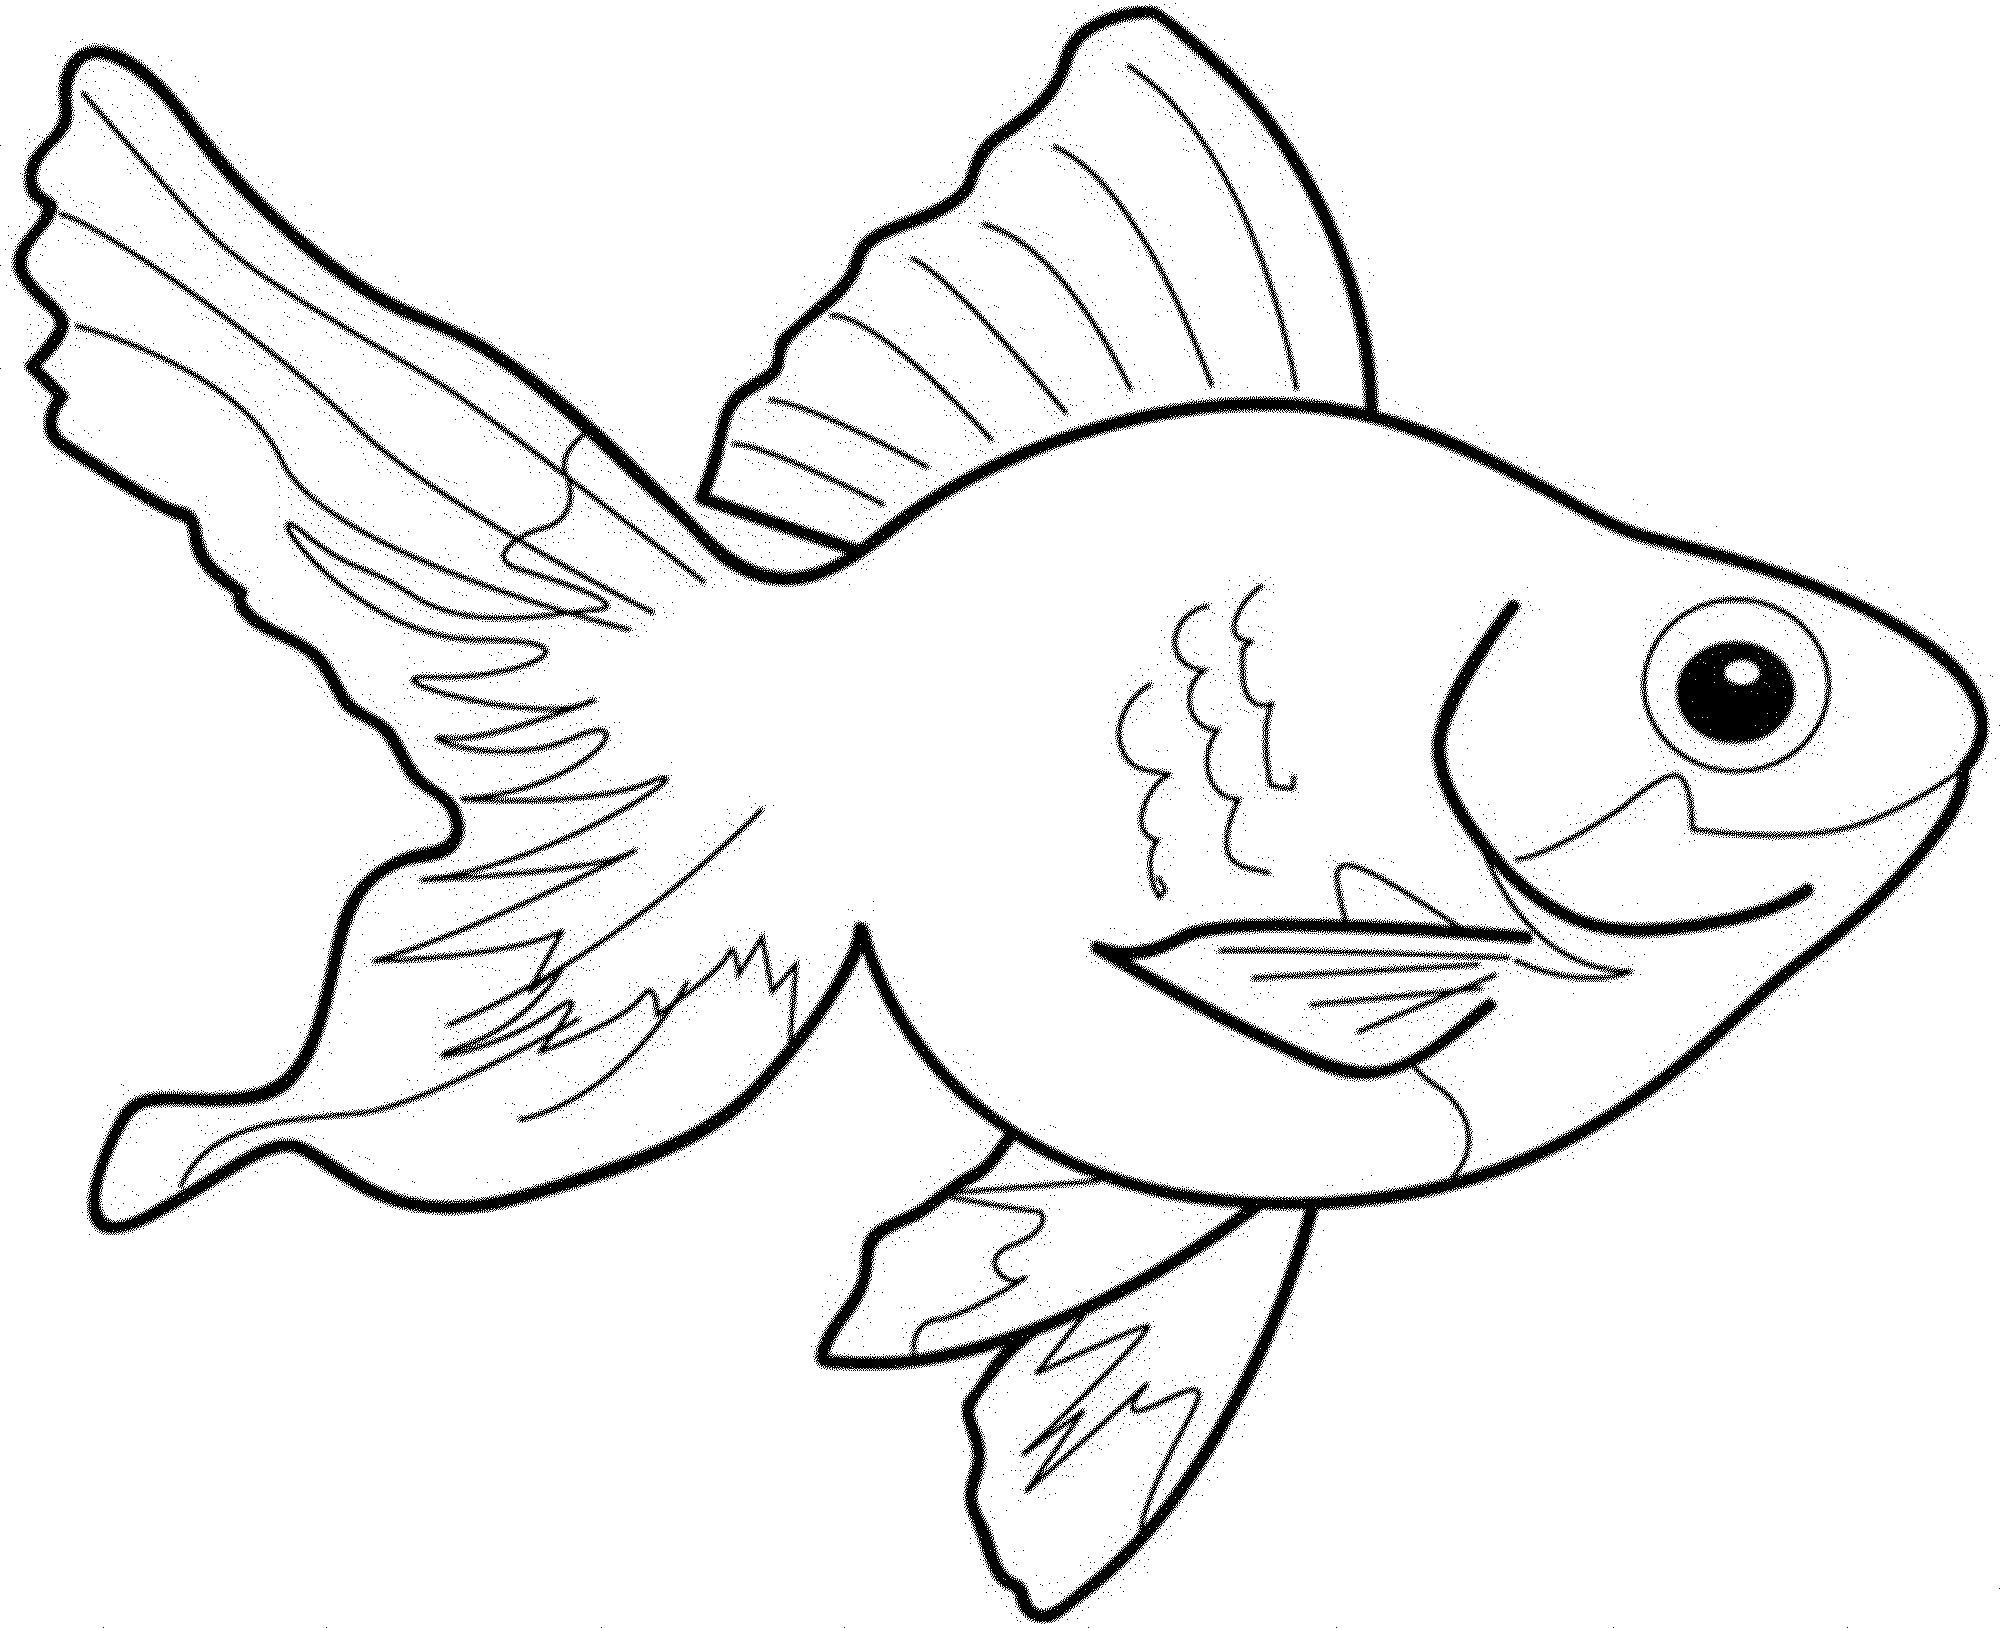 colouring picture of fish print download cute and educative fish coloring pages picture of colouring fish